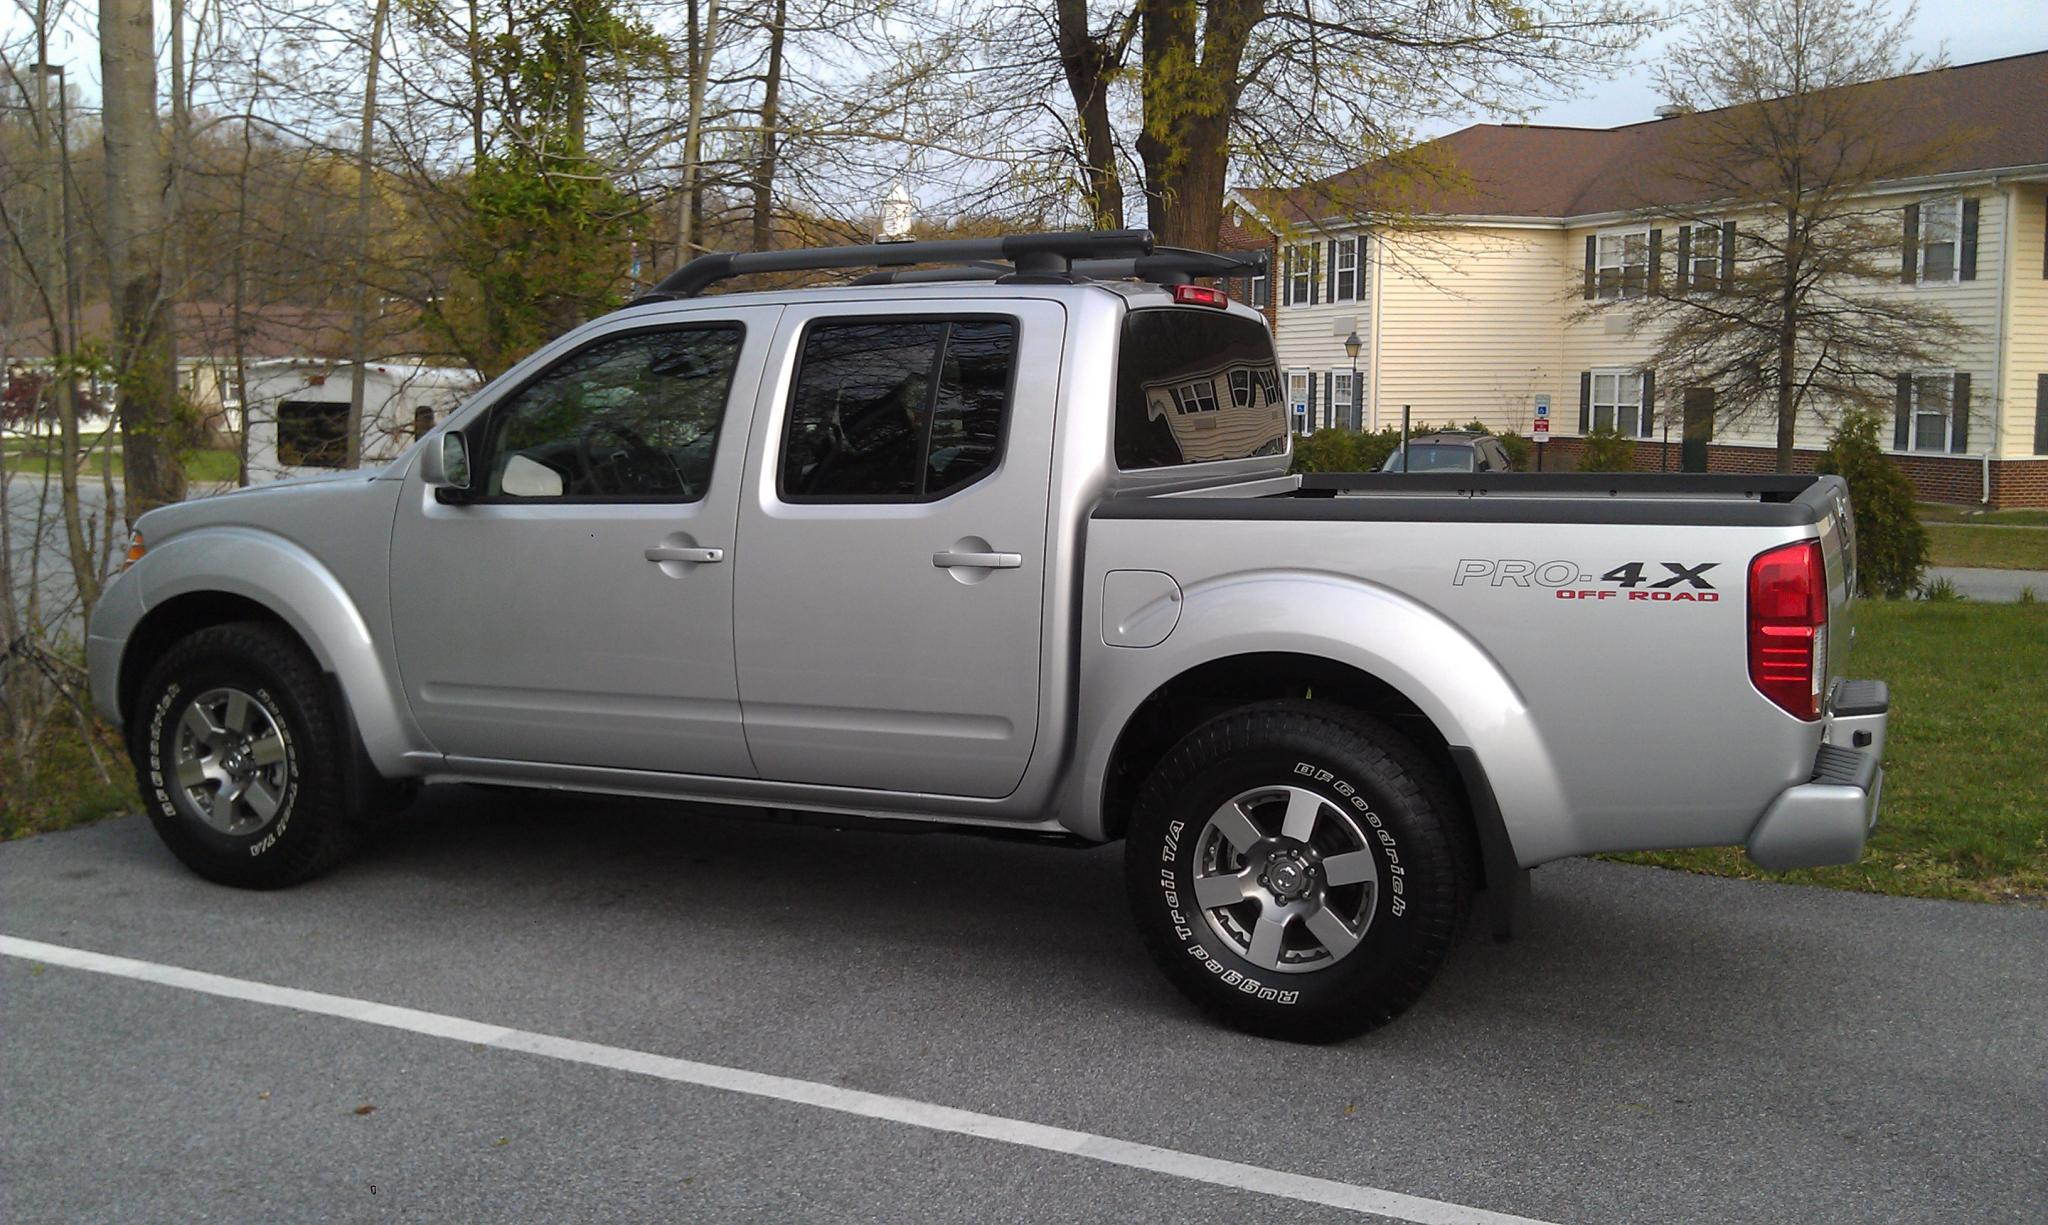 new pro-4x from delaware - nissan frontier forum